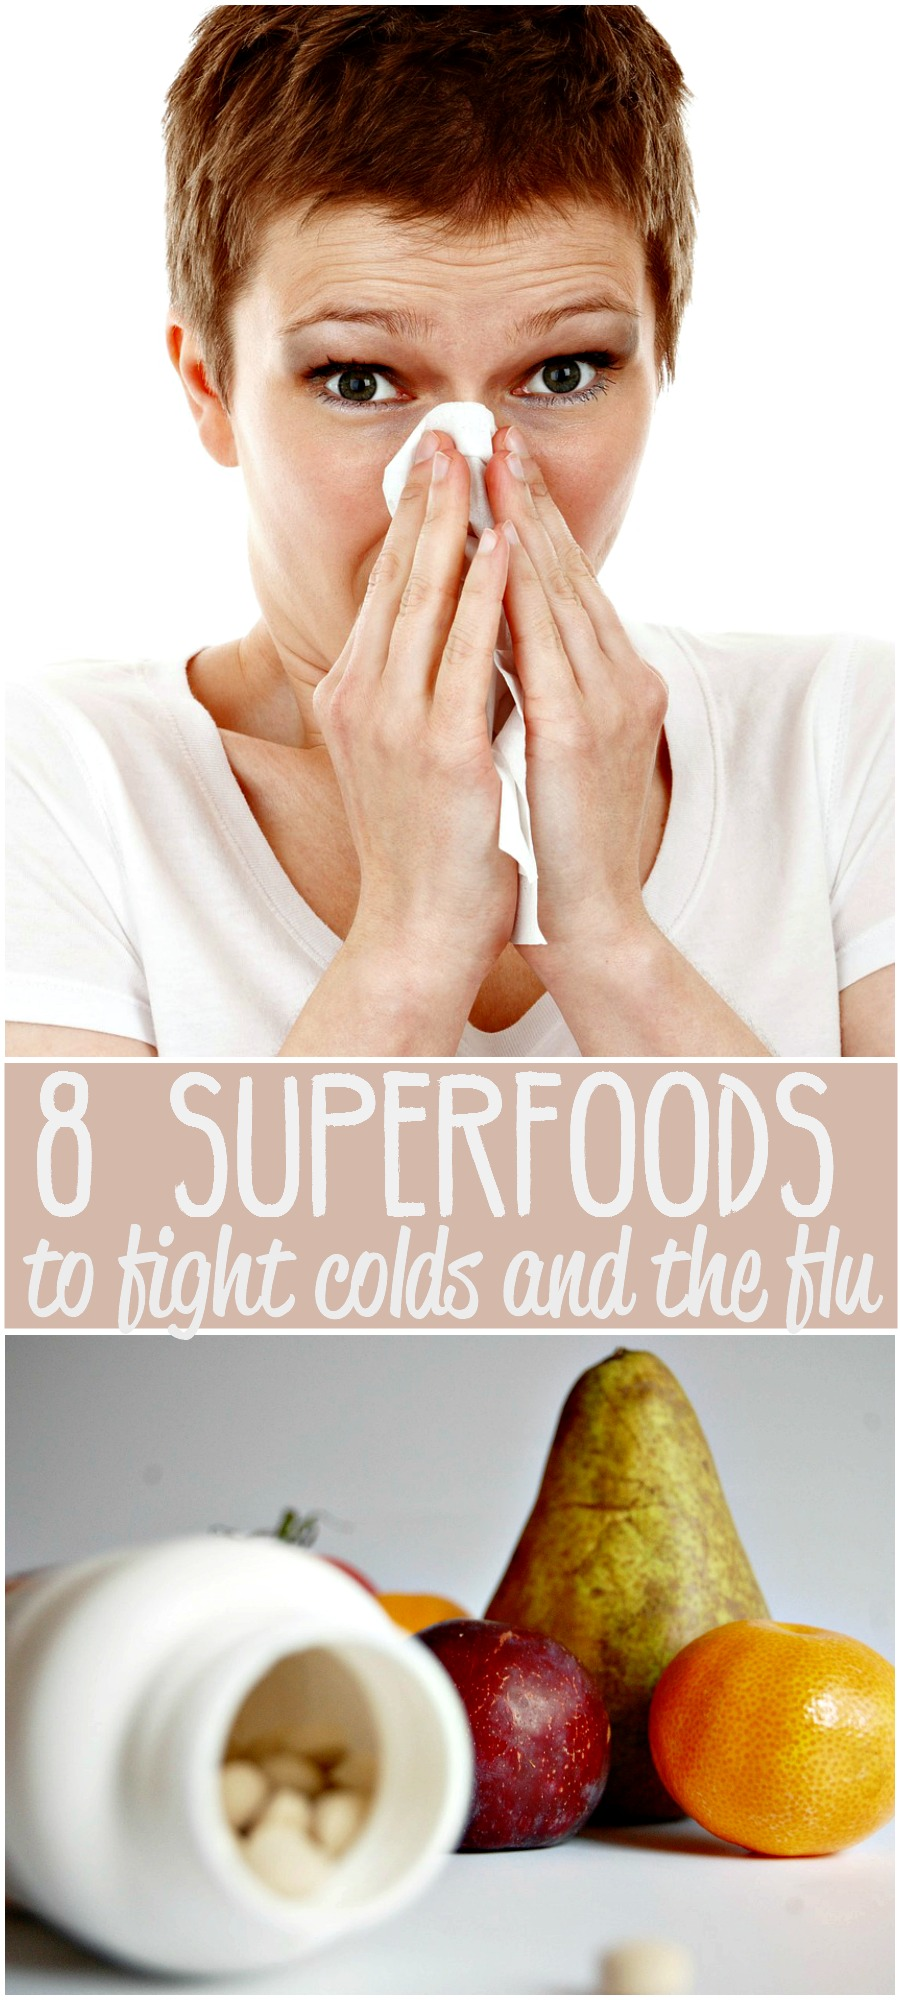 Cold and flu season is swiftly approaching. Consider adding these 8 superfoods to fight colds and the flu to your diet.